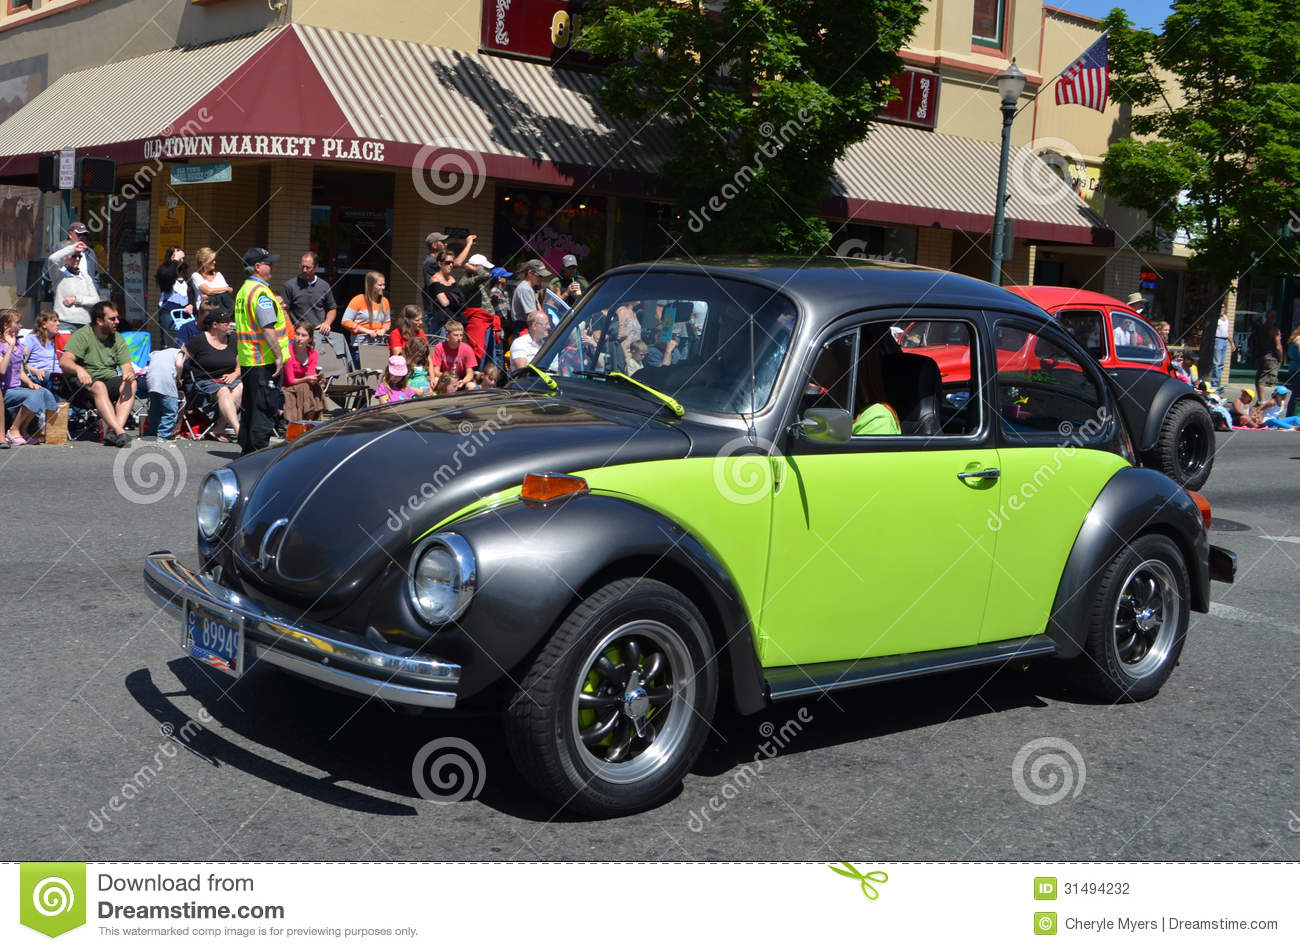 of one when s had classic review quite new sight bugs catching if feel re volkswagen do the in news vw possible up gallery how you carcostcanada test getting years it road beetle